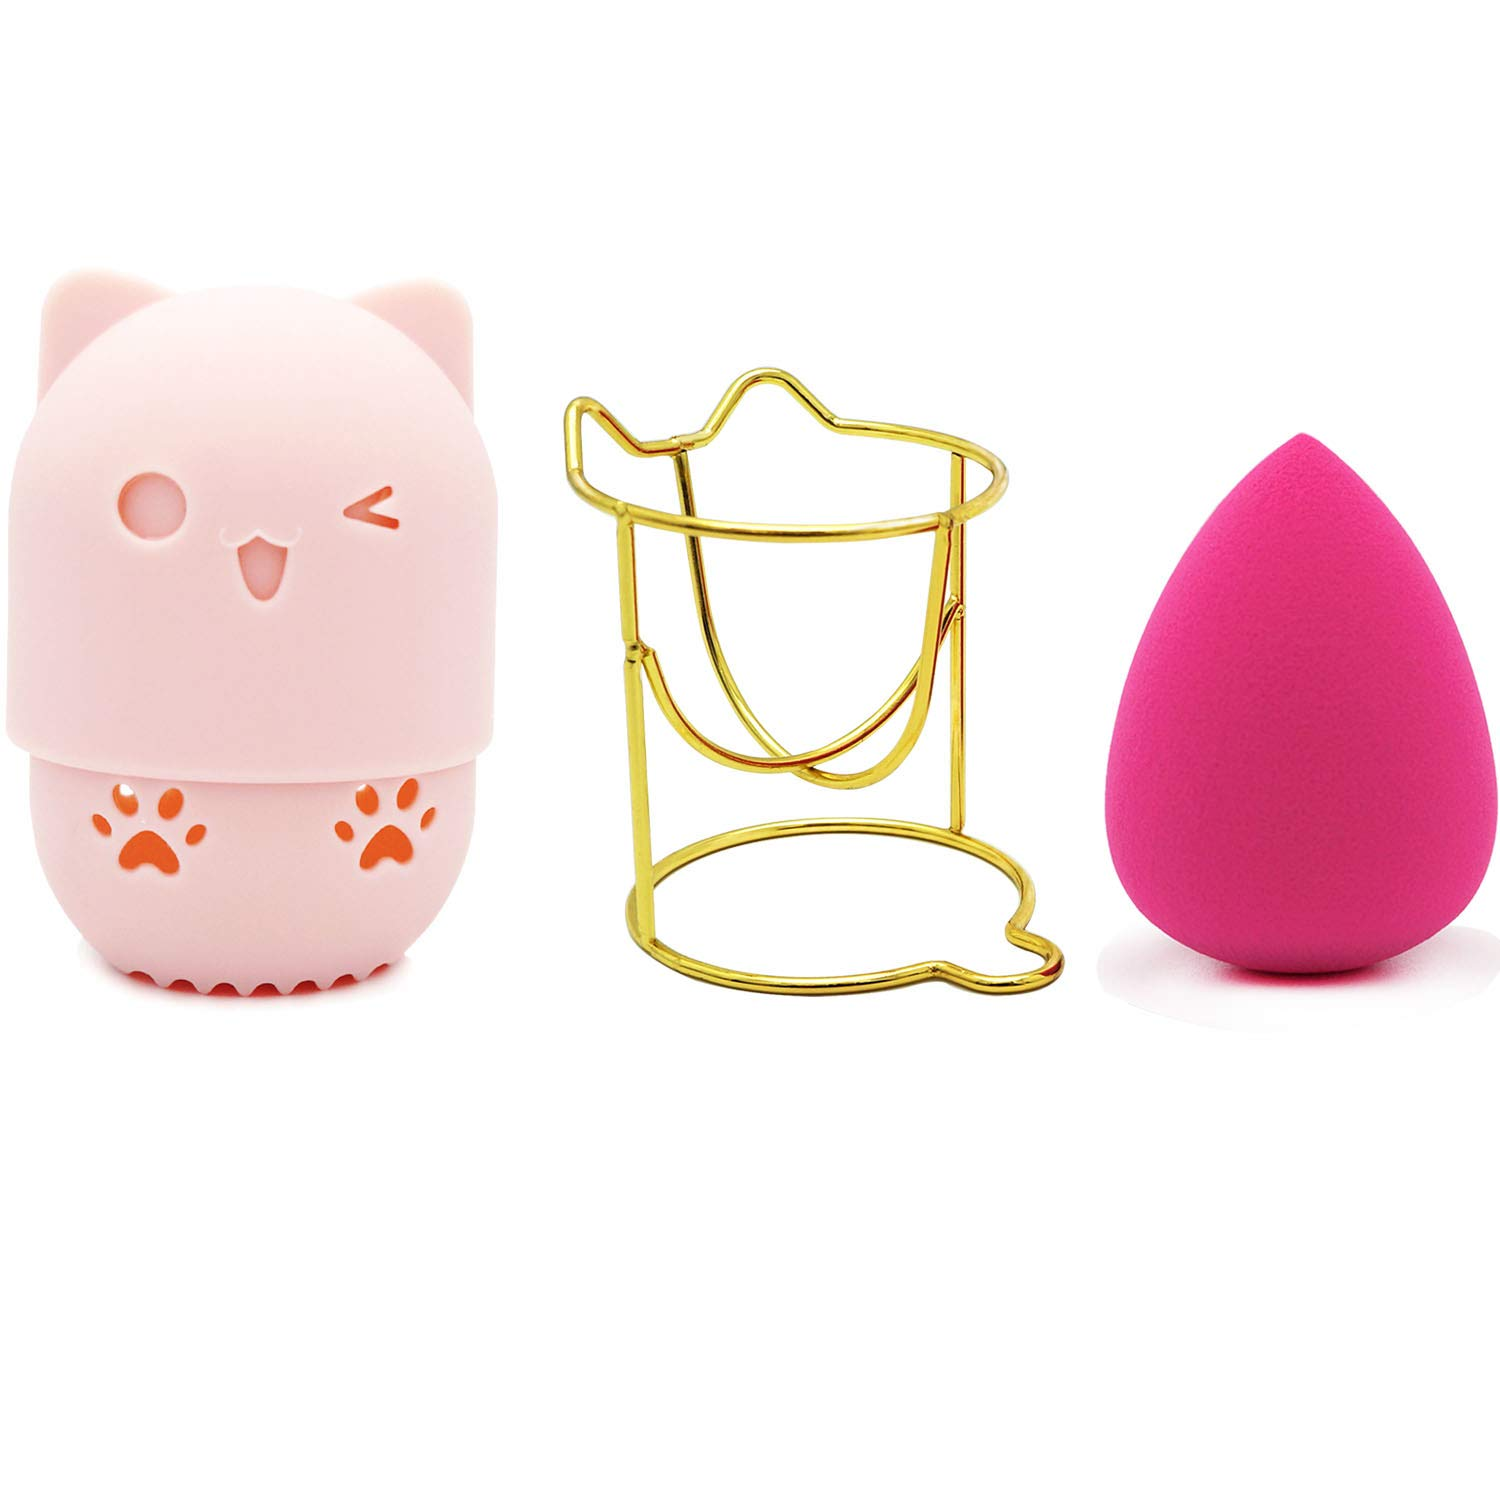 LOVCHU Latex-free Professional Makeup Sponge Set Blender Beauty Foundation Blending Sponge with Cute Pink Cat Travel Partner + Golden Drying Holder - Perfect for Liquid, Cream, Concealer and Powder